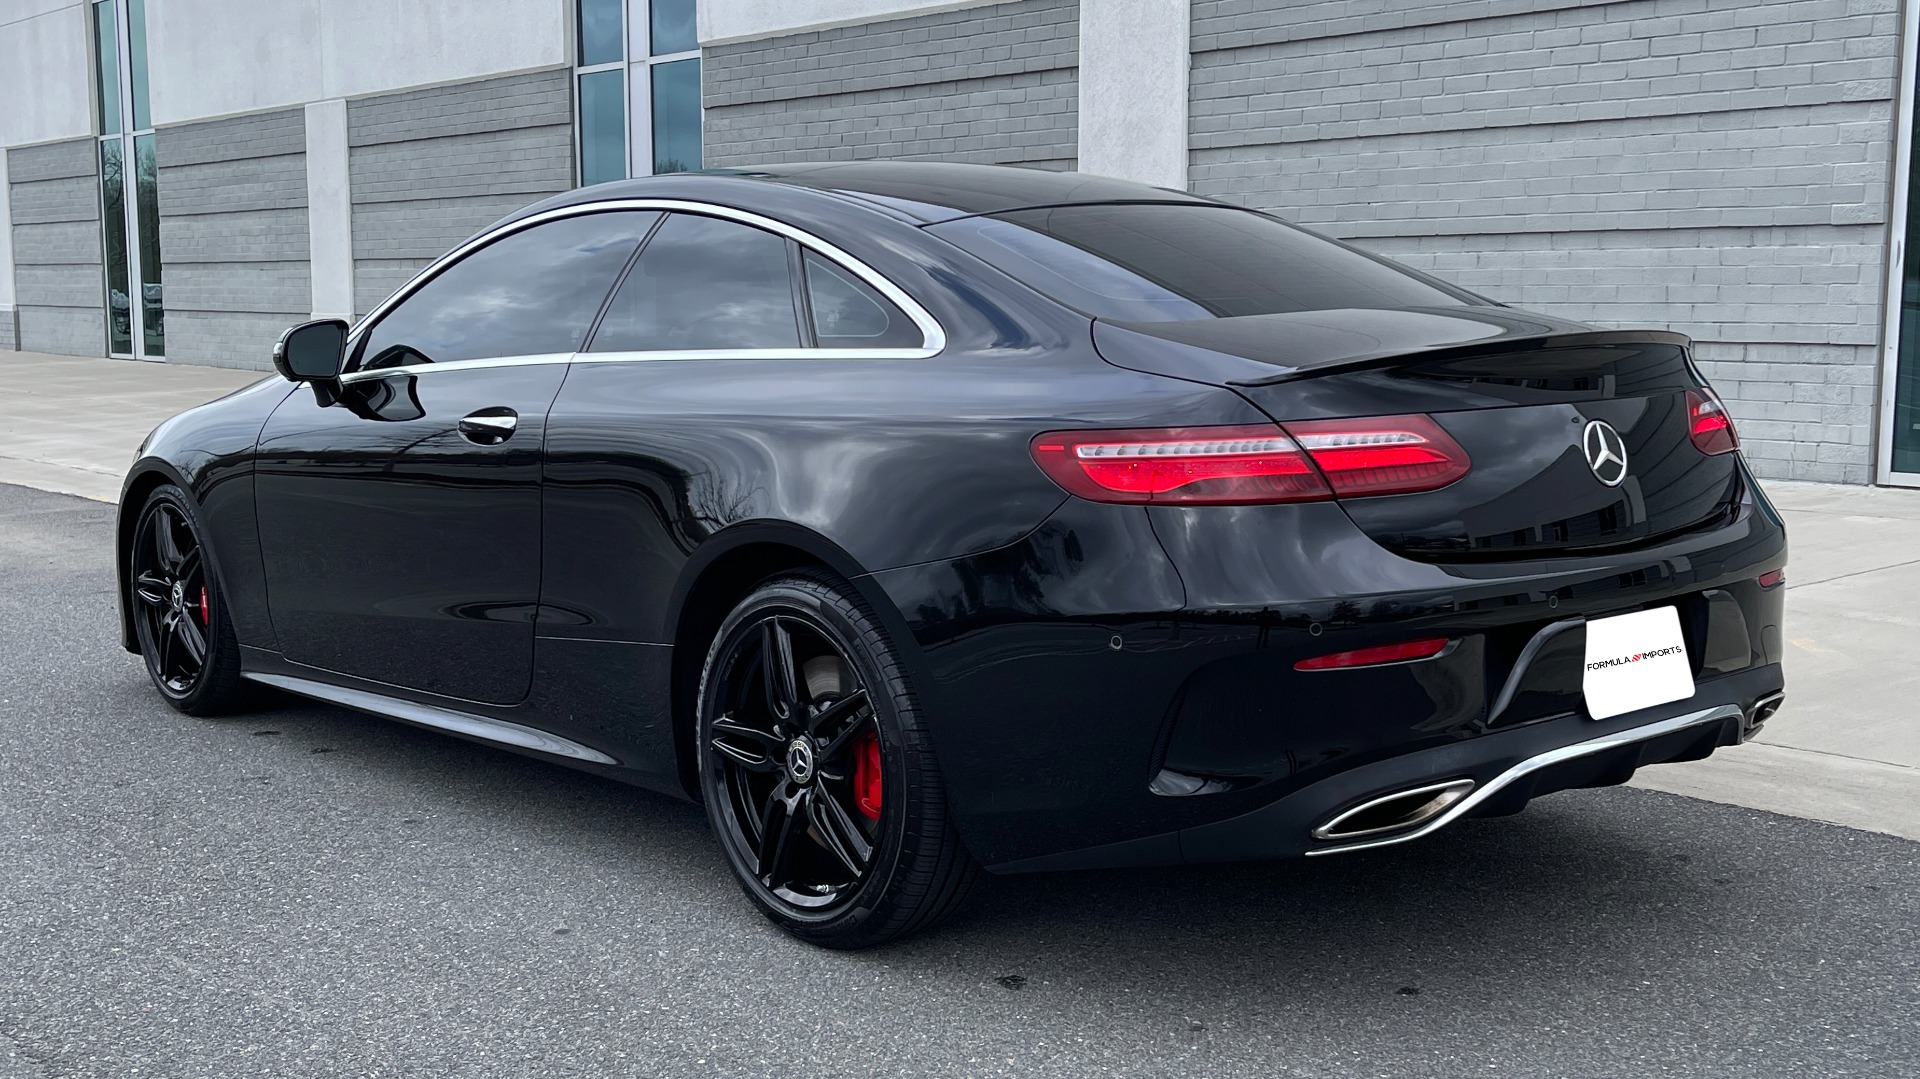 Used 2019 Mercedes-Benz E-CLASS E 450 PREMIUM / AMG LINE / PARK ASST / BSA / BURMESTER for sale $49,995 at Formula Imports in Charlotte NC 28227 4